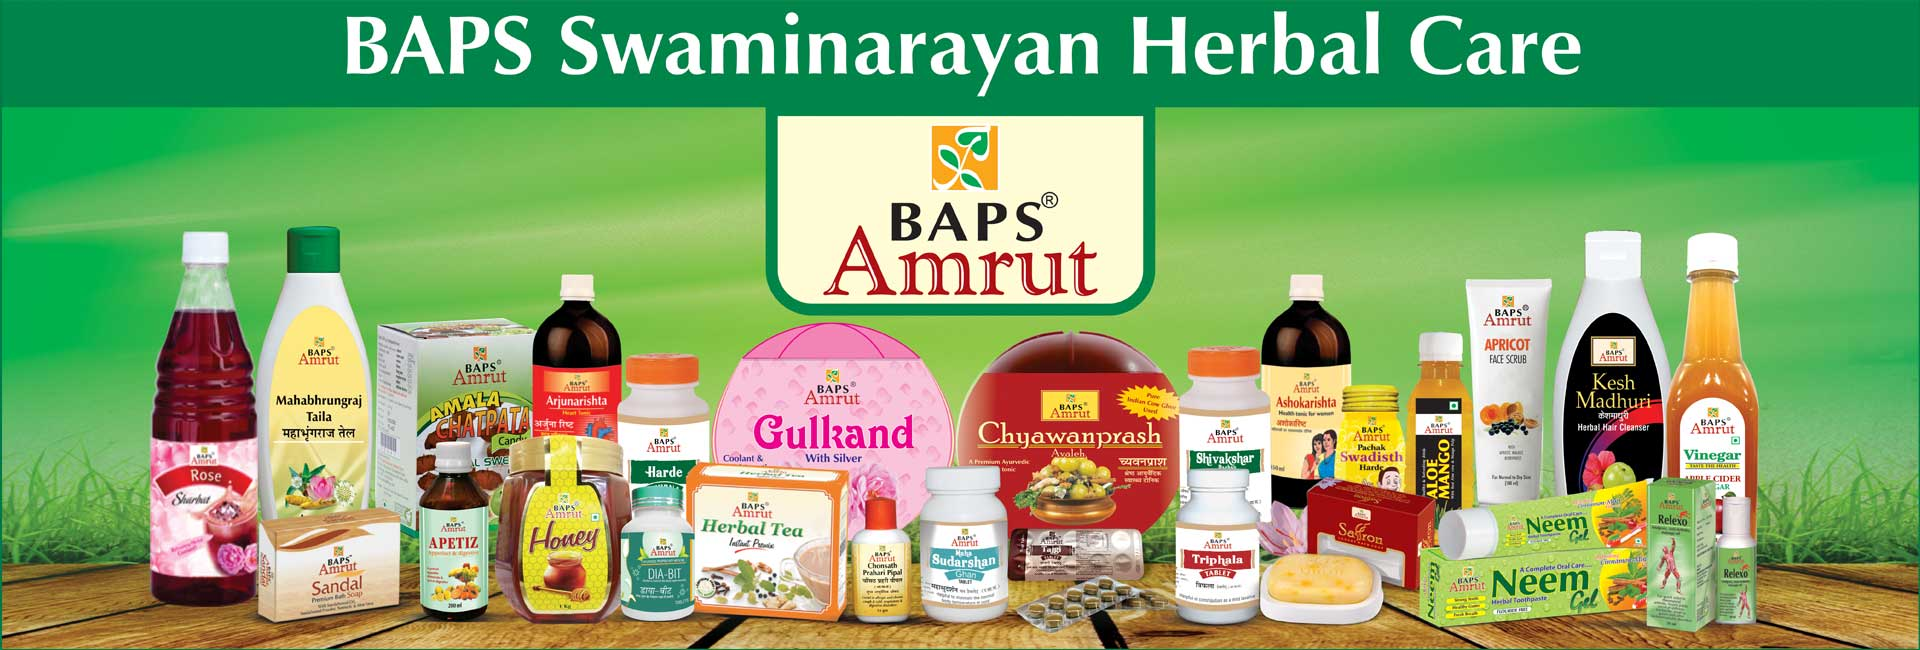 Herbal BAPS Products